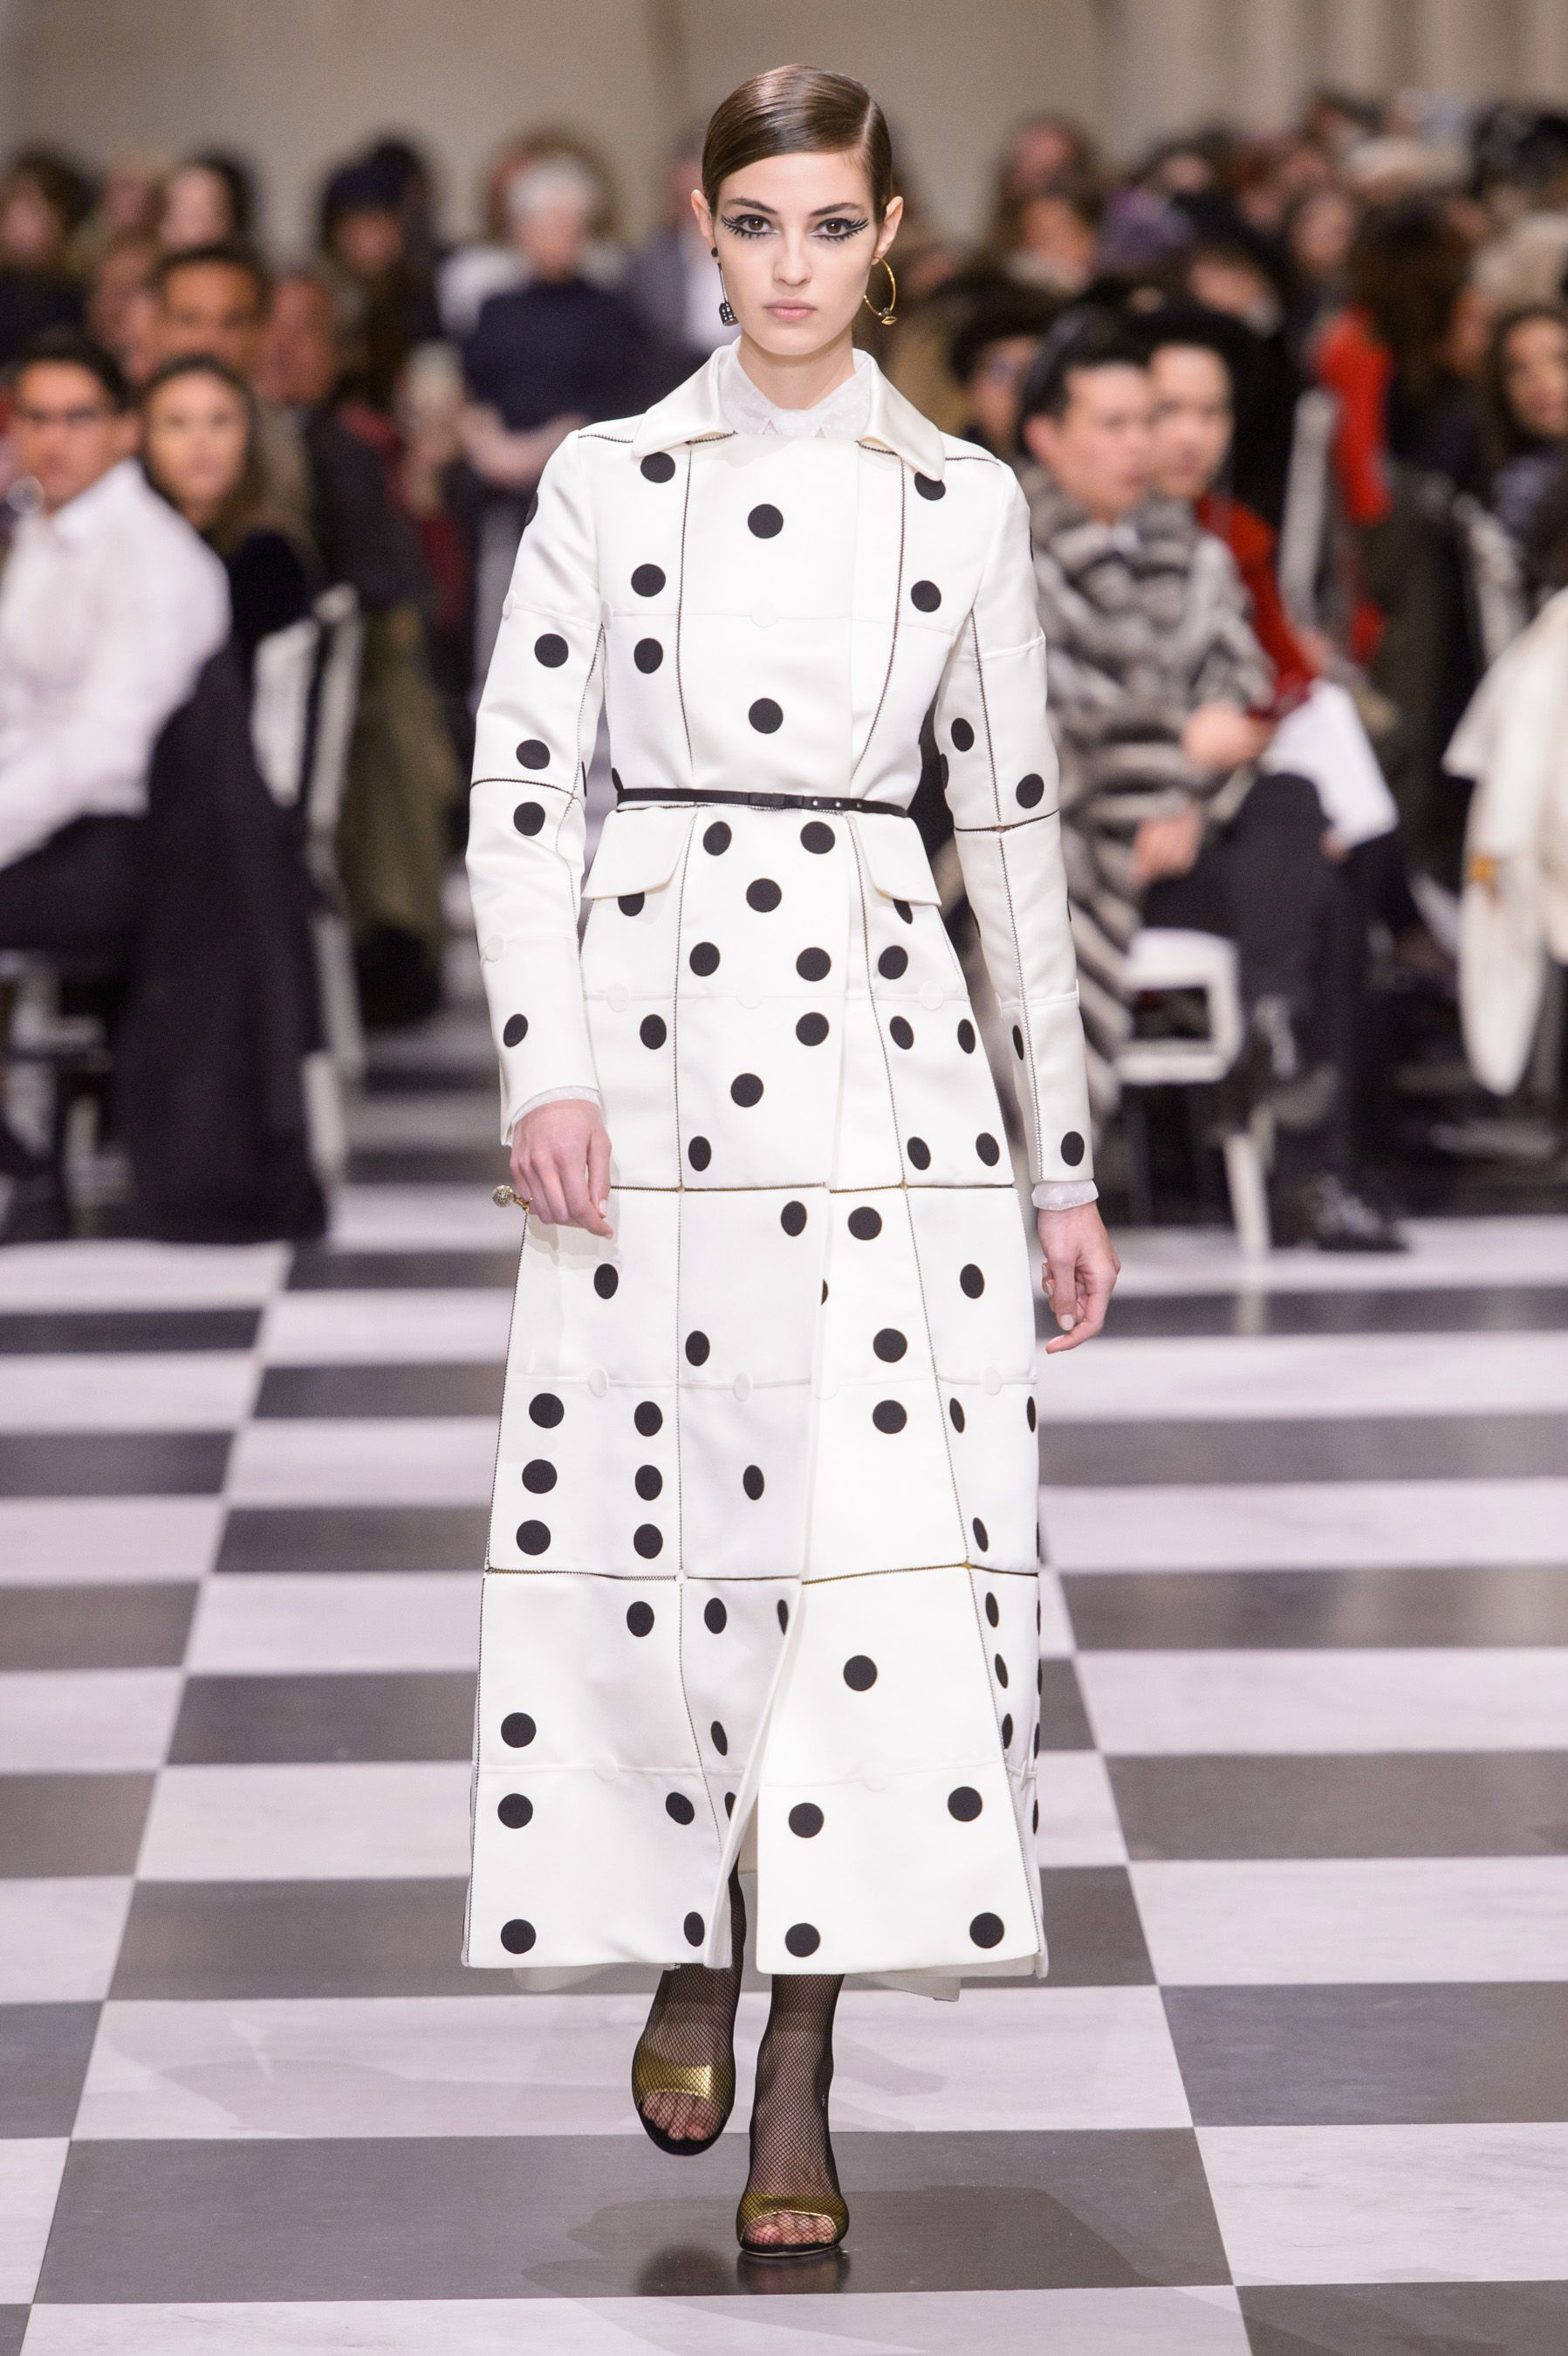 Christian Dior Spring 2018 Couture